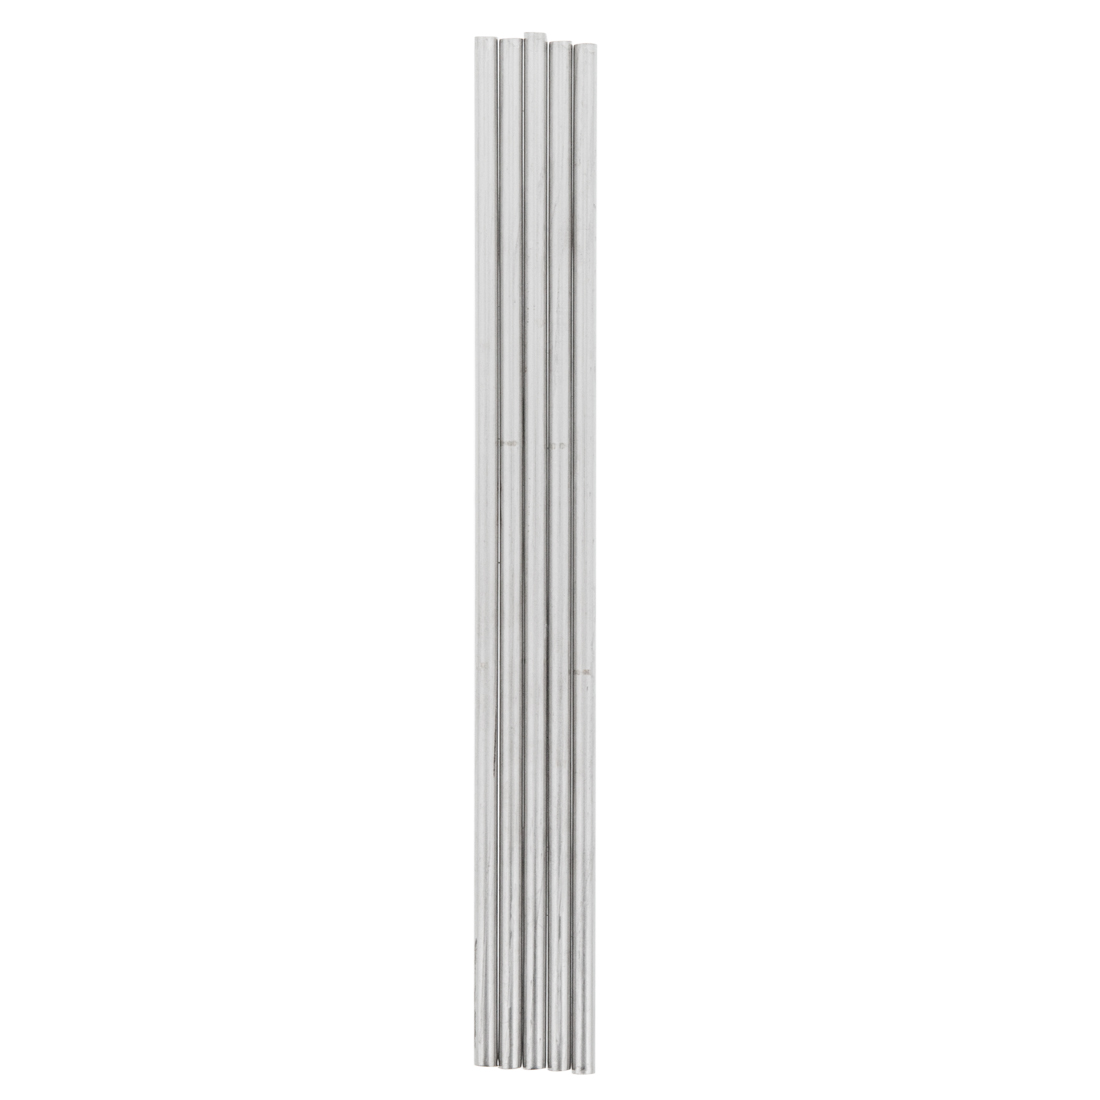 "3/16"" Solid Steel Mandrels (5pk)"